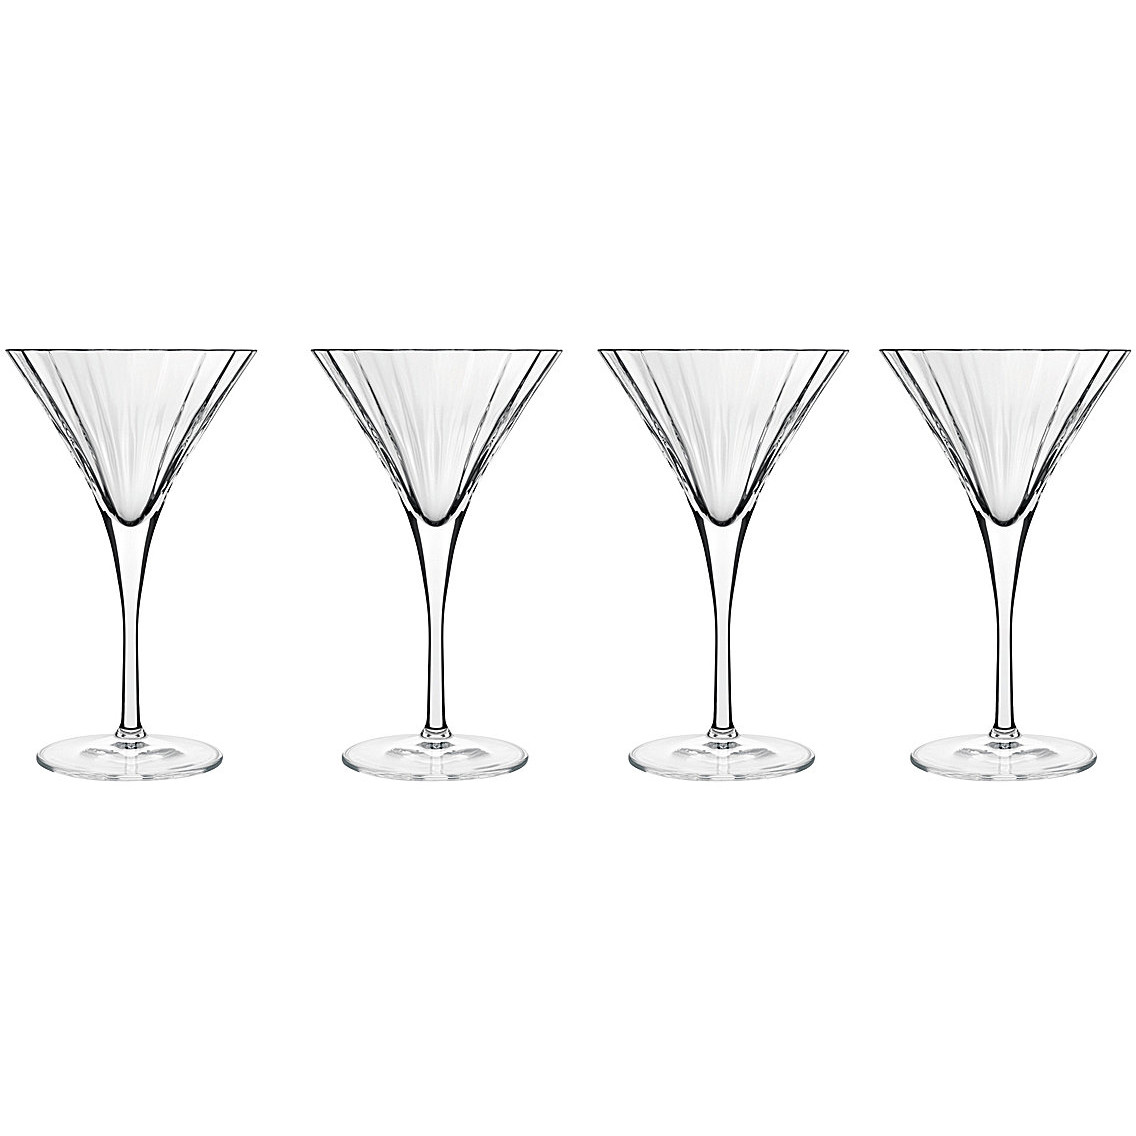 Luigi Bormioli Bach Crystal Martini Glass, Set of 4